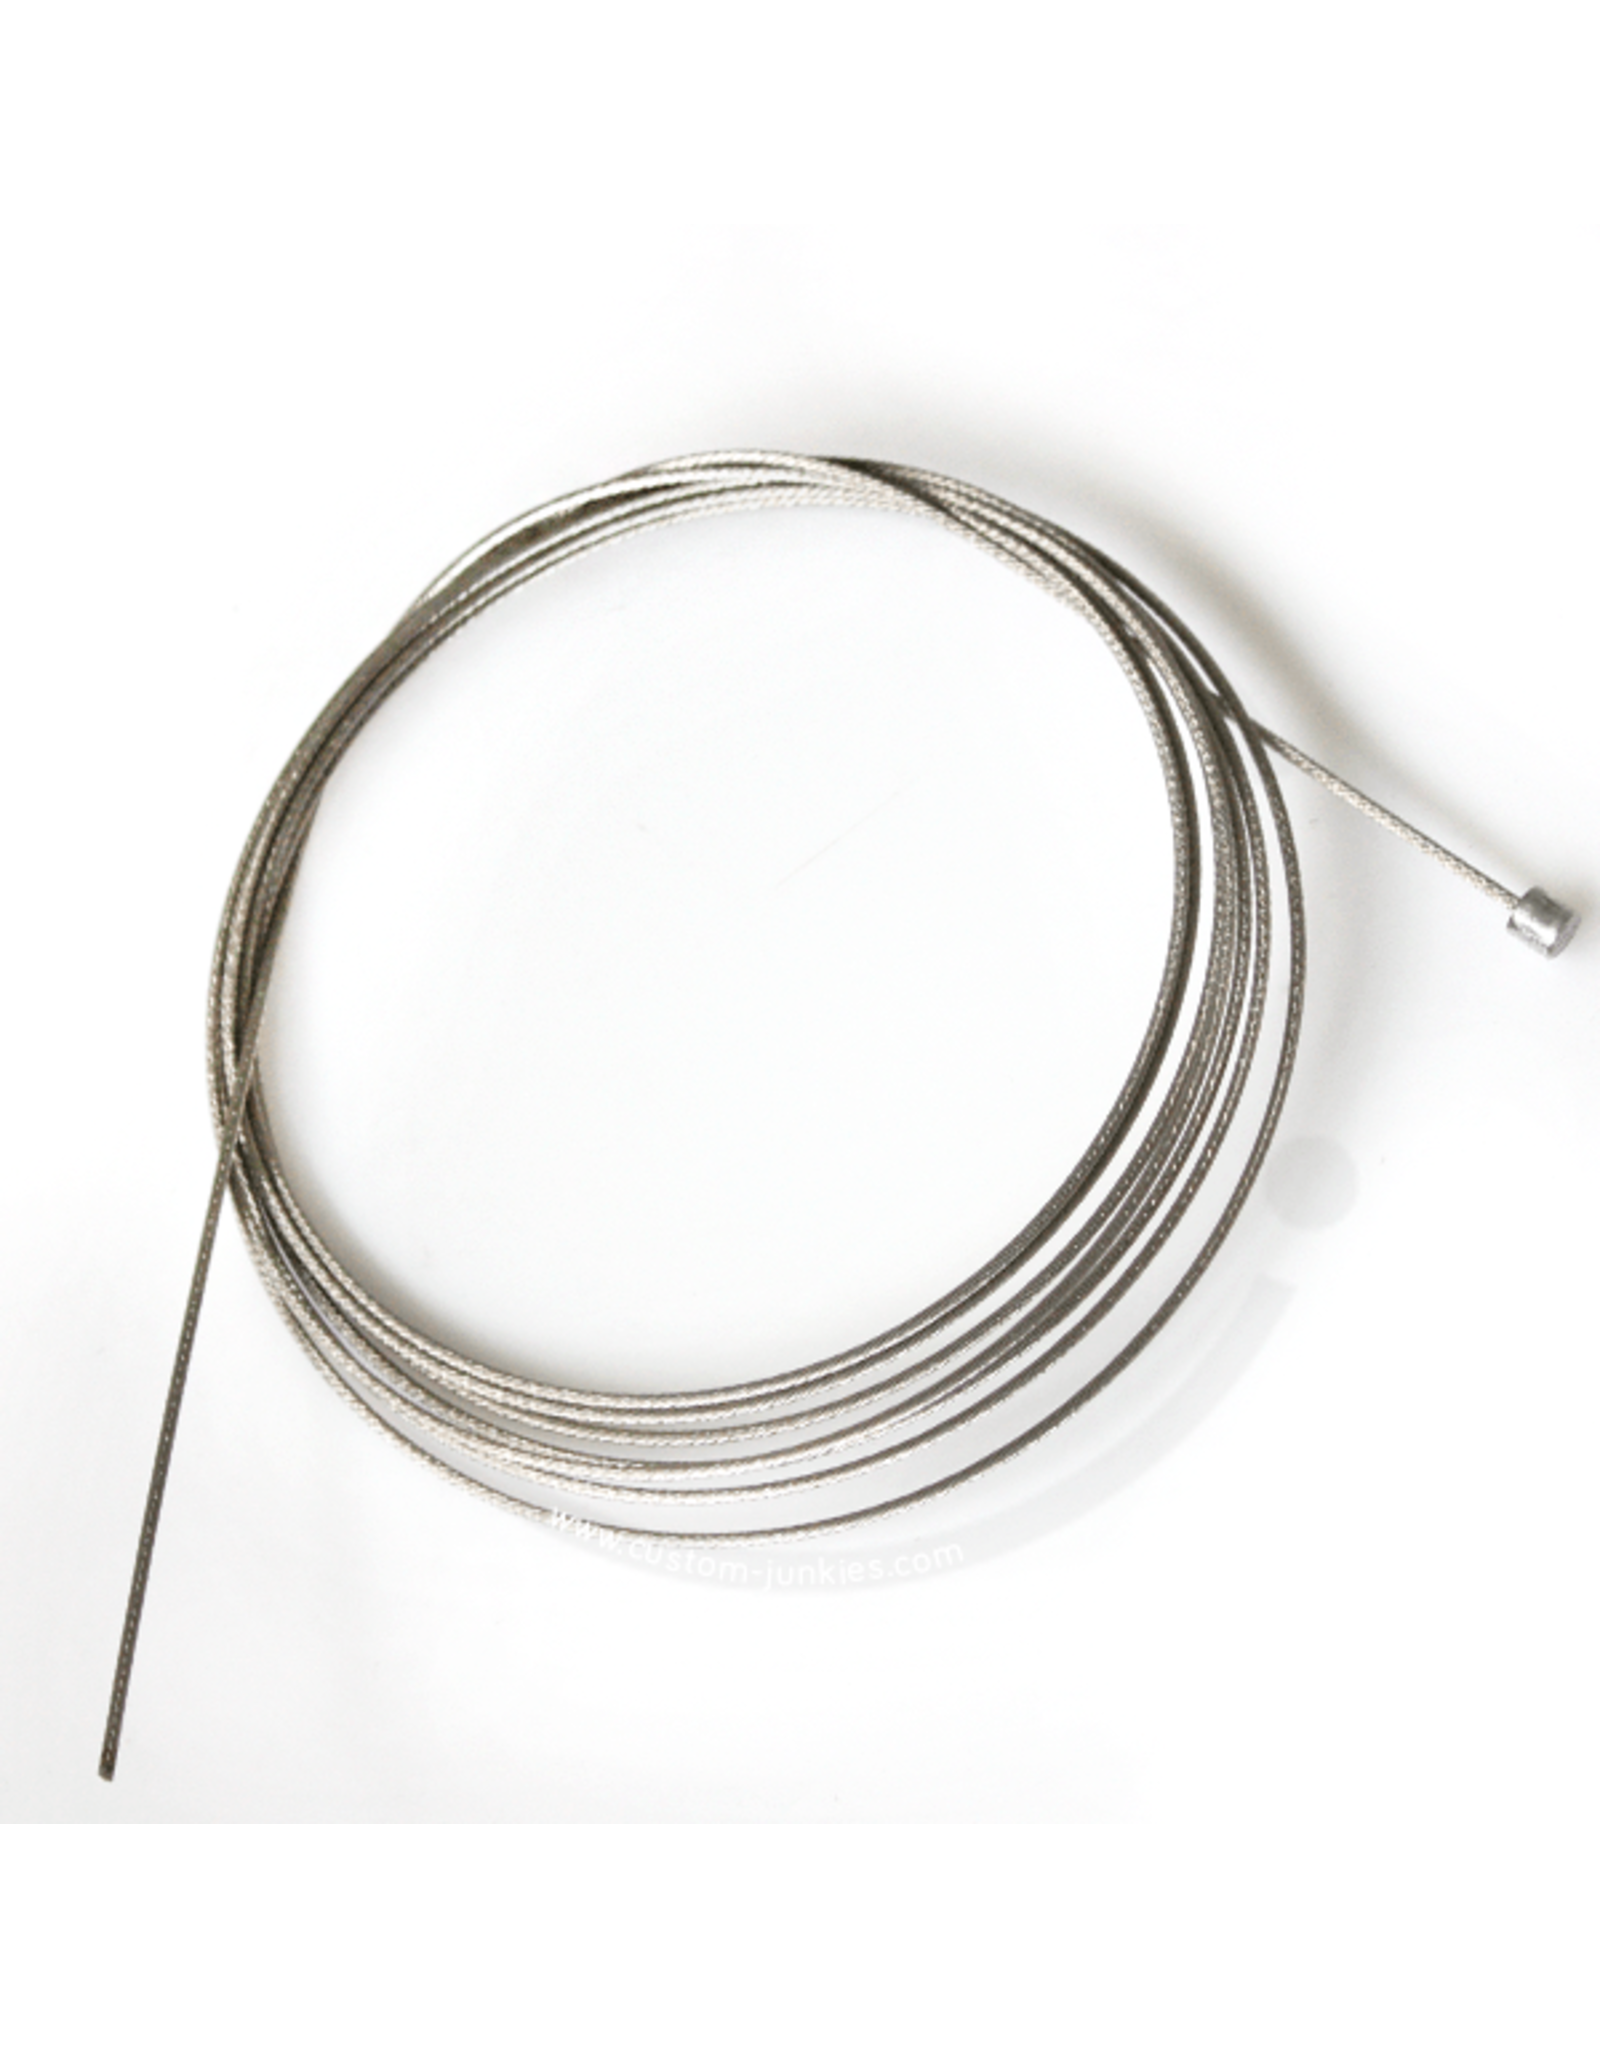 SHIMANO SHIFT CABLE 1.2MM (STAINLESS SHIMANO)